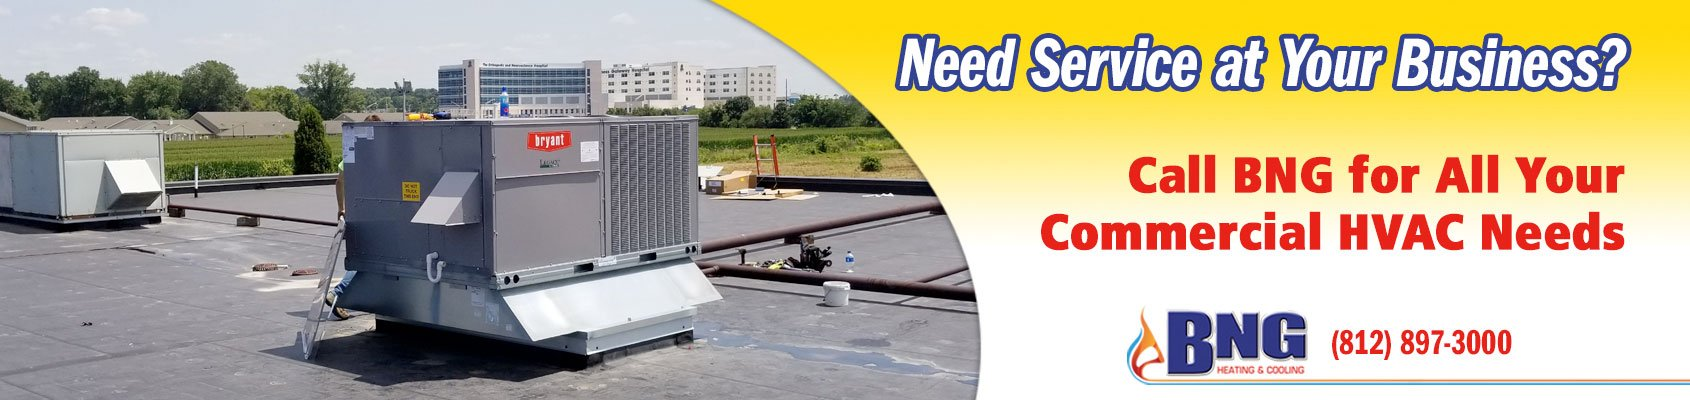 Nedd Service at Your Business? Call BNG for All Your Commercial HVAC Needs